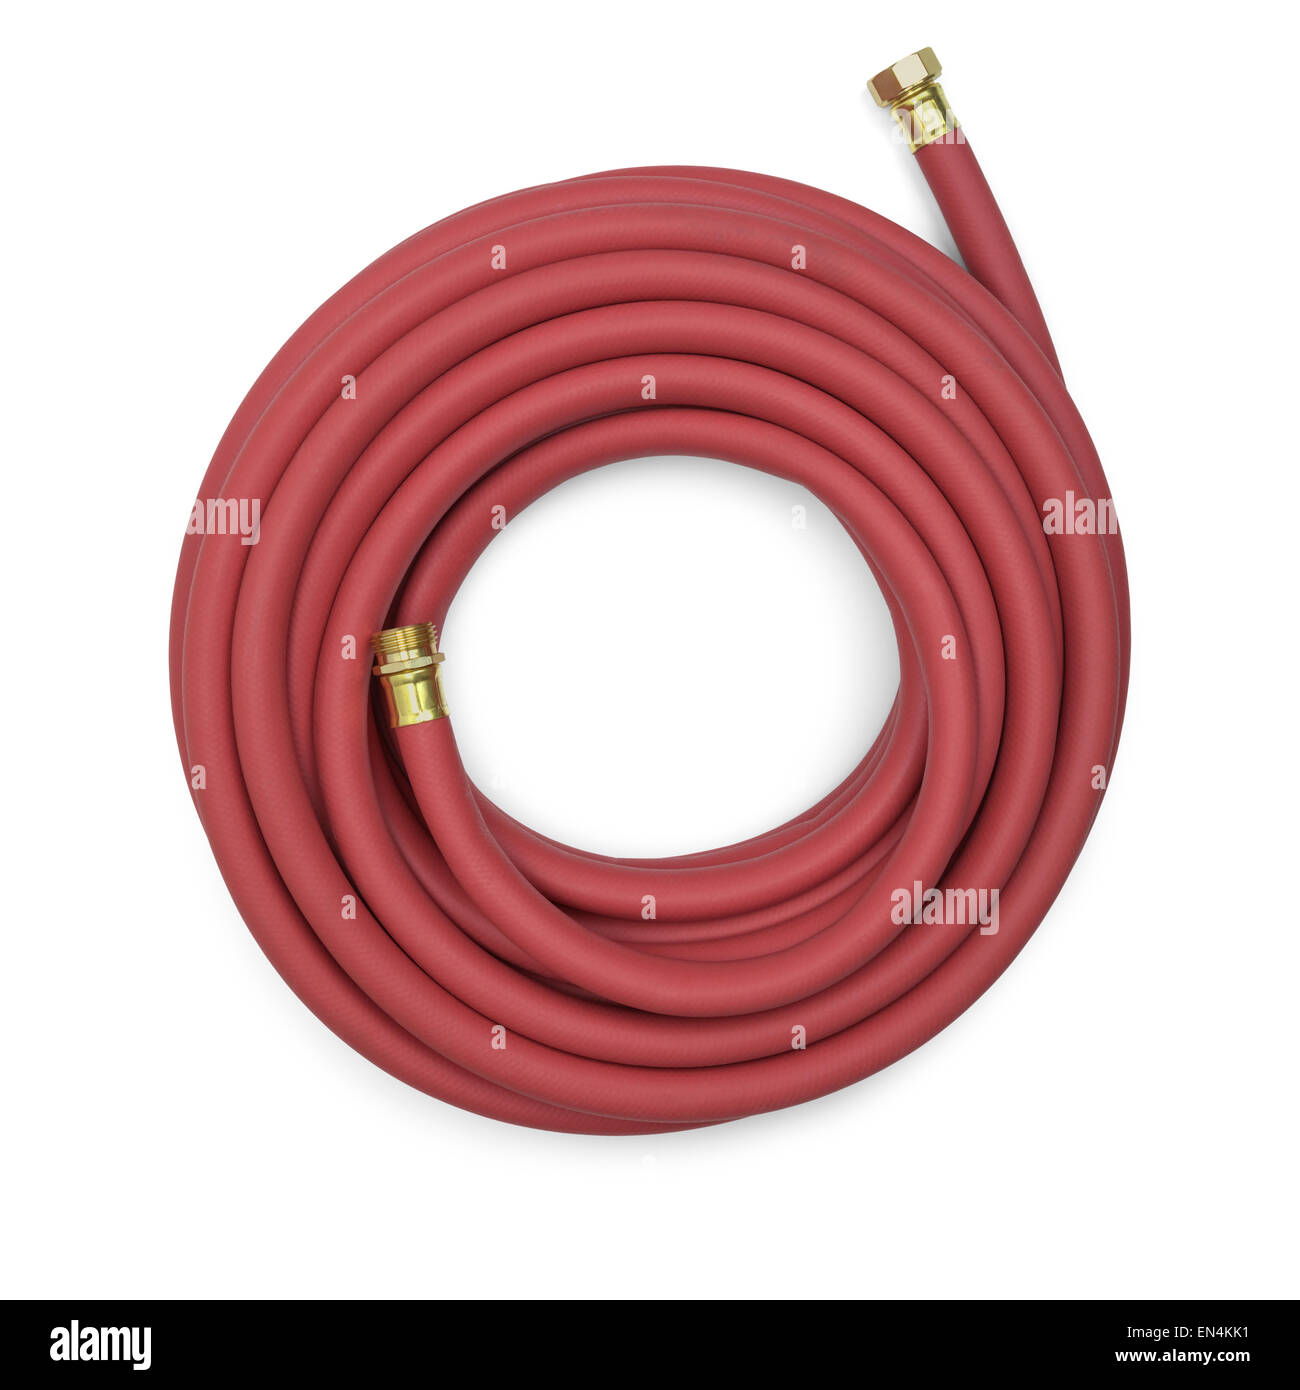 Top View Of A Red Garden Hose Isolated On A White Background.